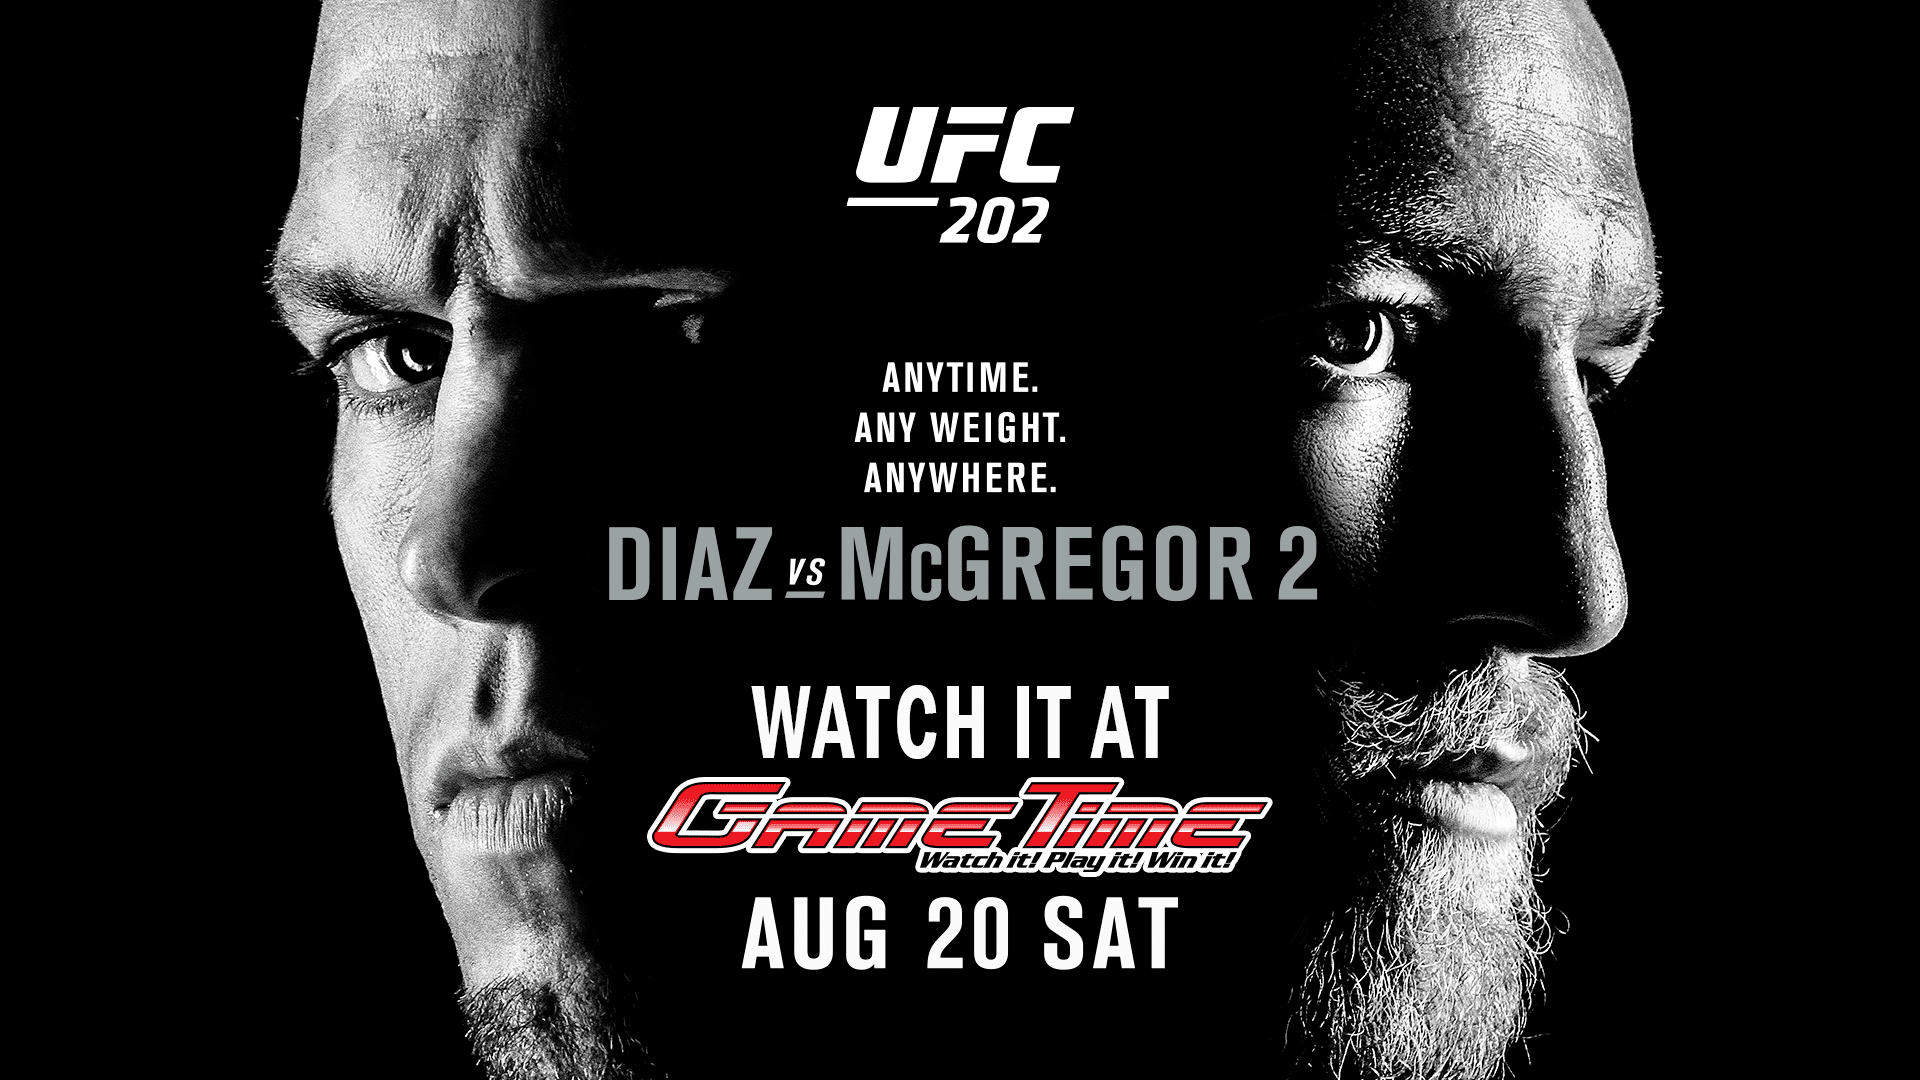 Watch-UFC-Diaz-vs-McGregor-2-August-2016-at-GameTime-Miami-Tampa-Fort-Myers